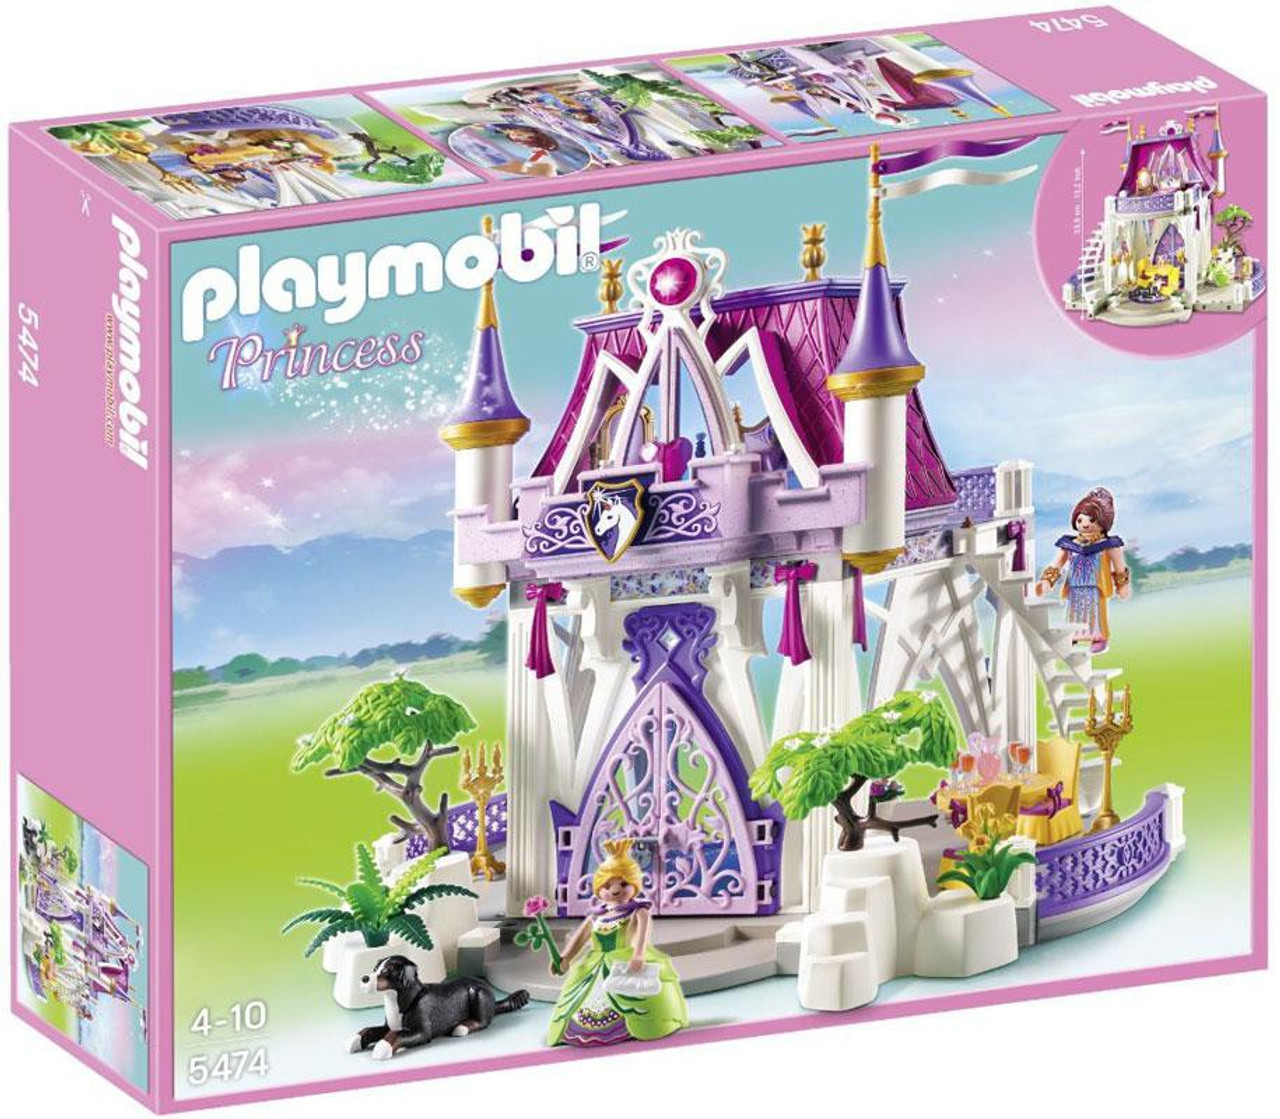 Playmobil Fairies Unicorn Jewel Castle Set #5474